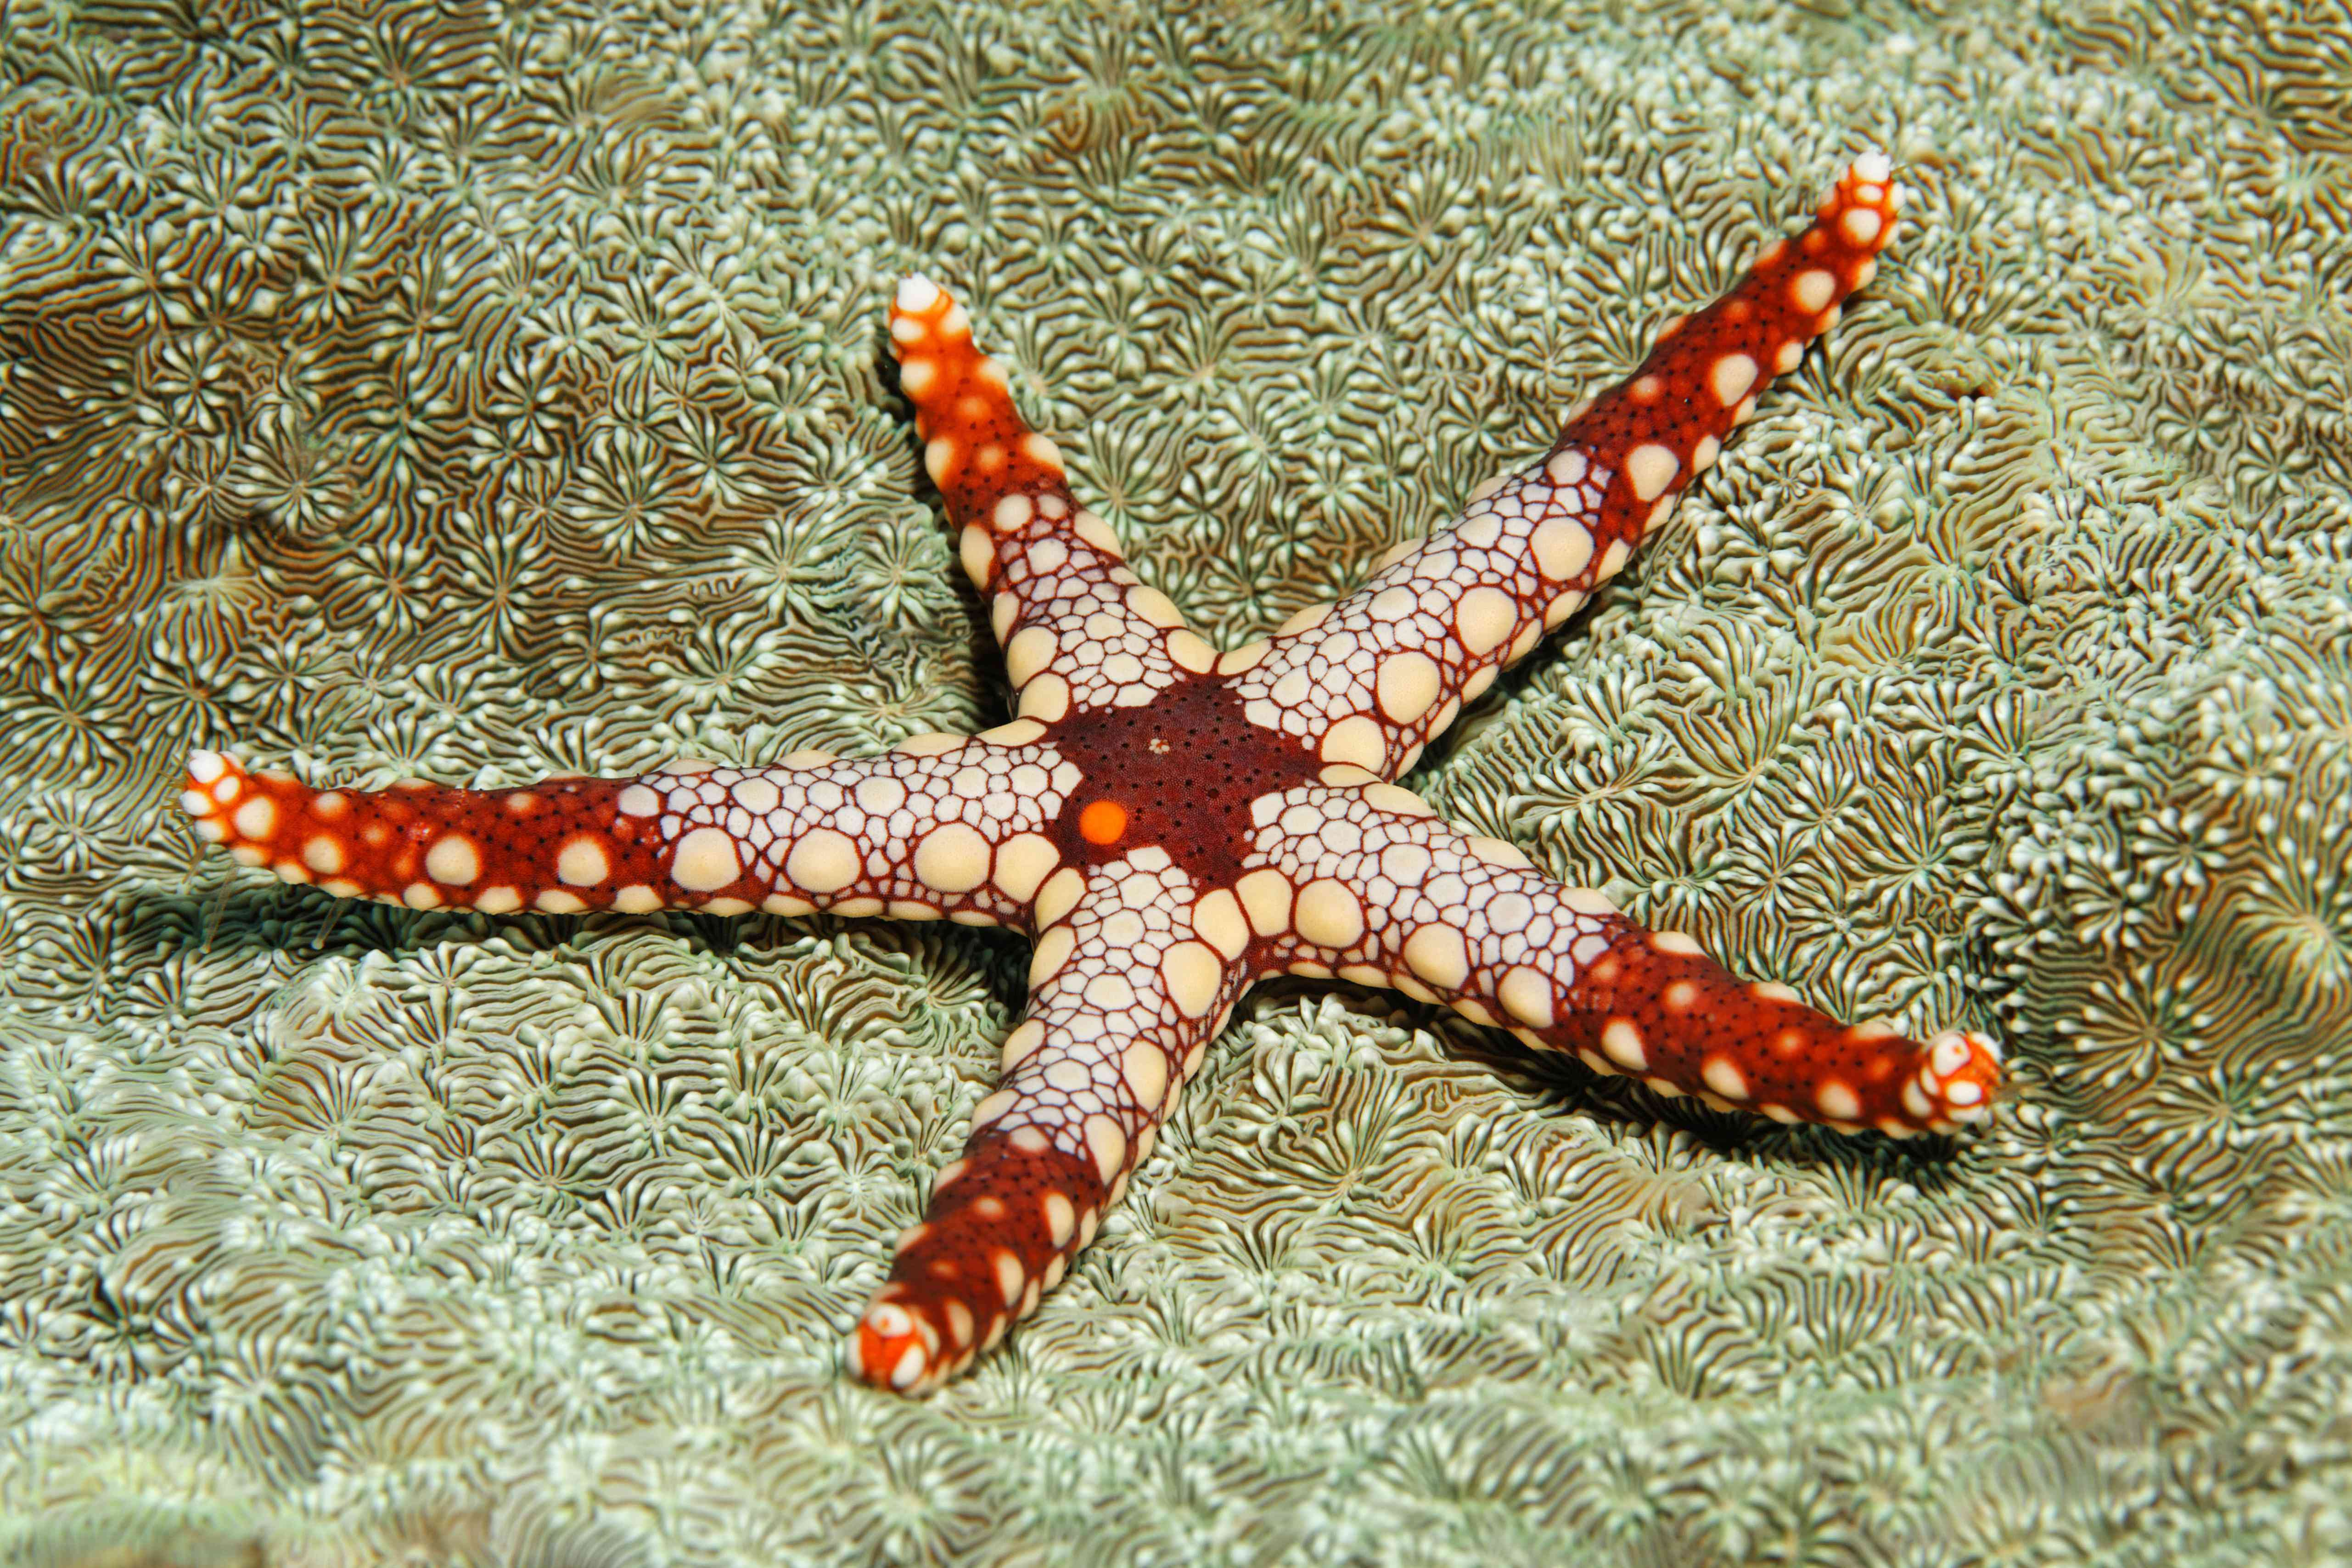 Necklace sea star with ornamental spots